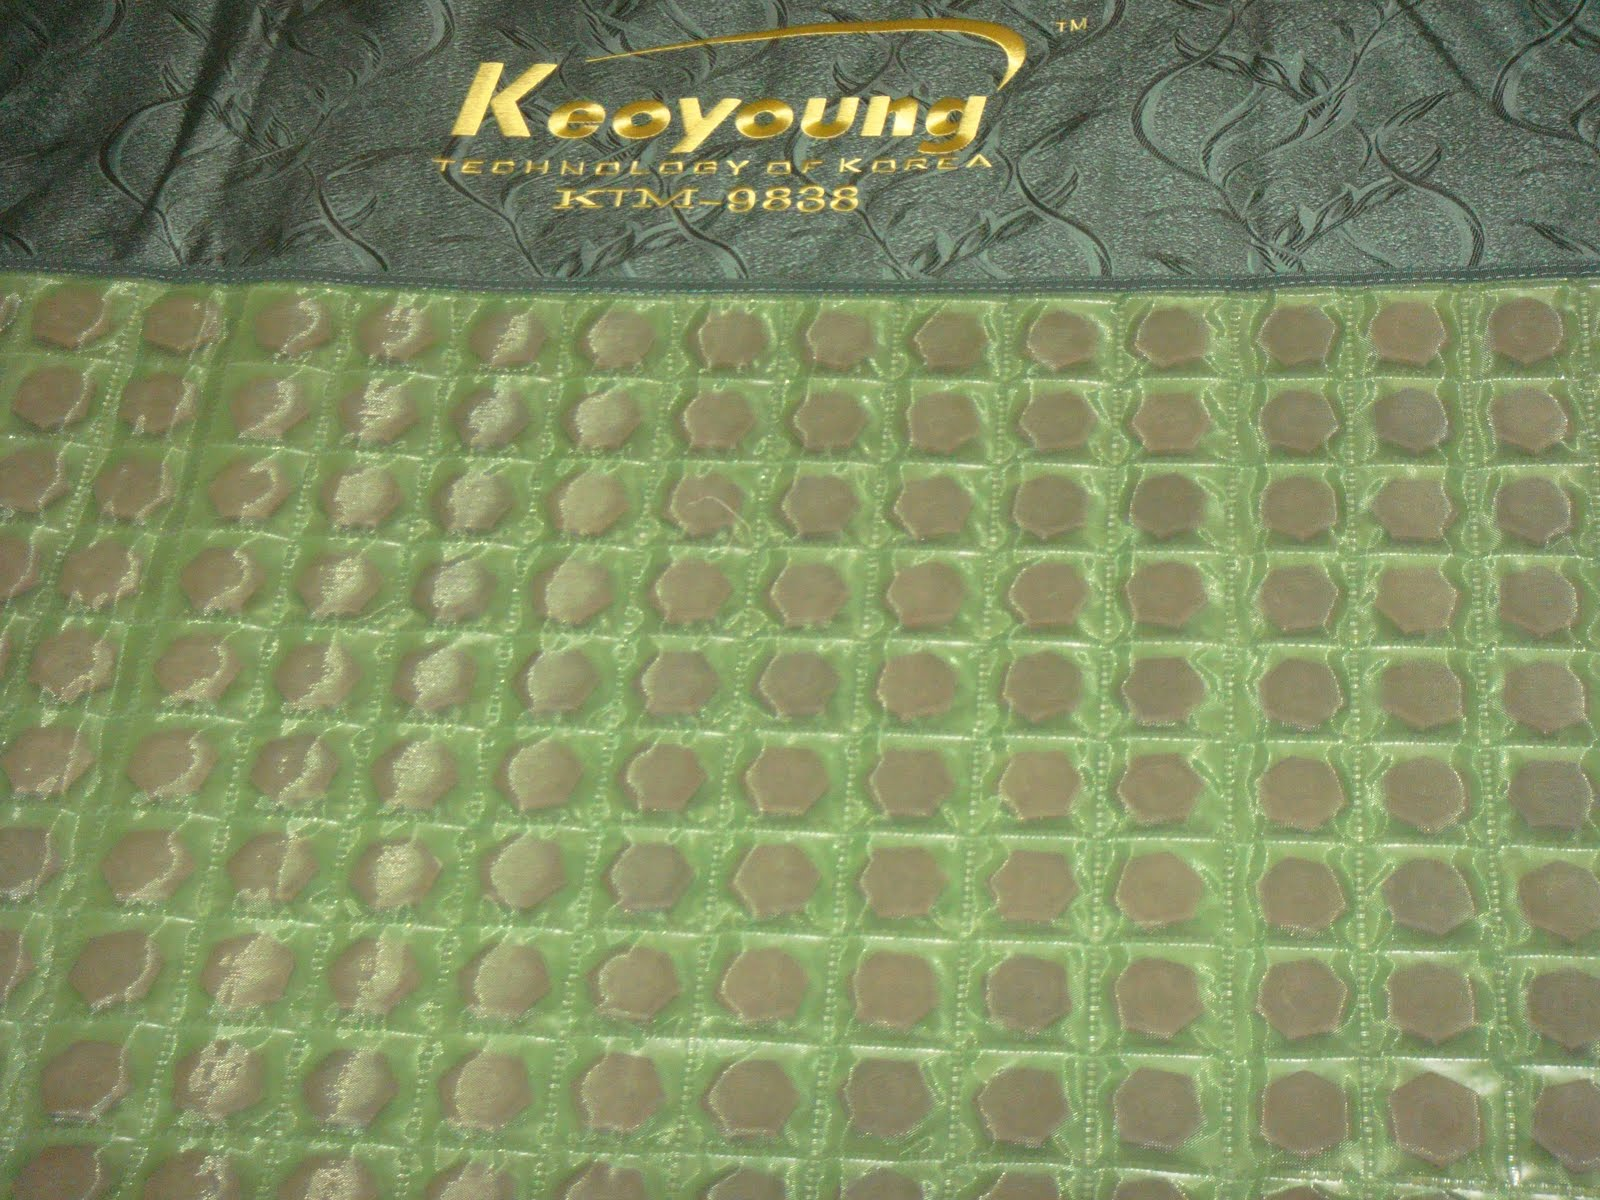 blog store korea keoyoung mattress mat rm tourmaline nego my technology of jade